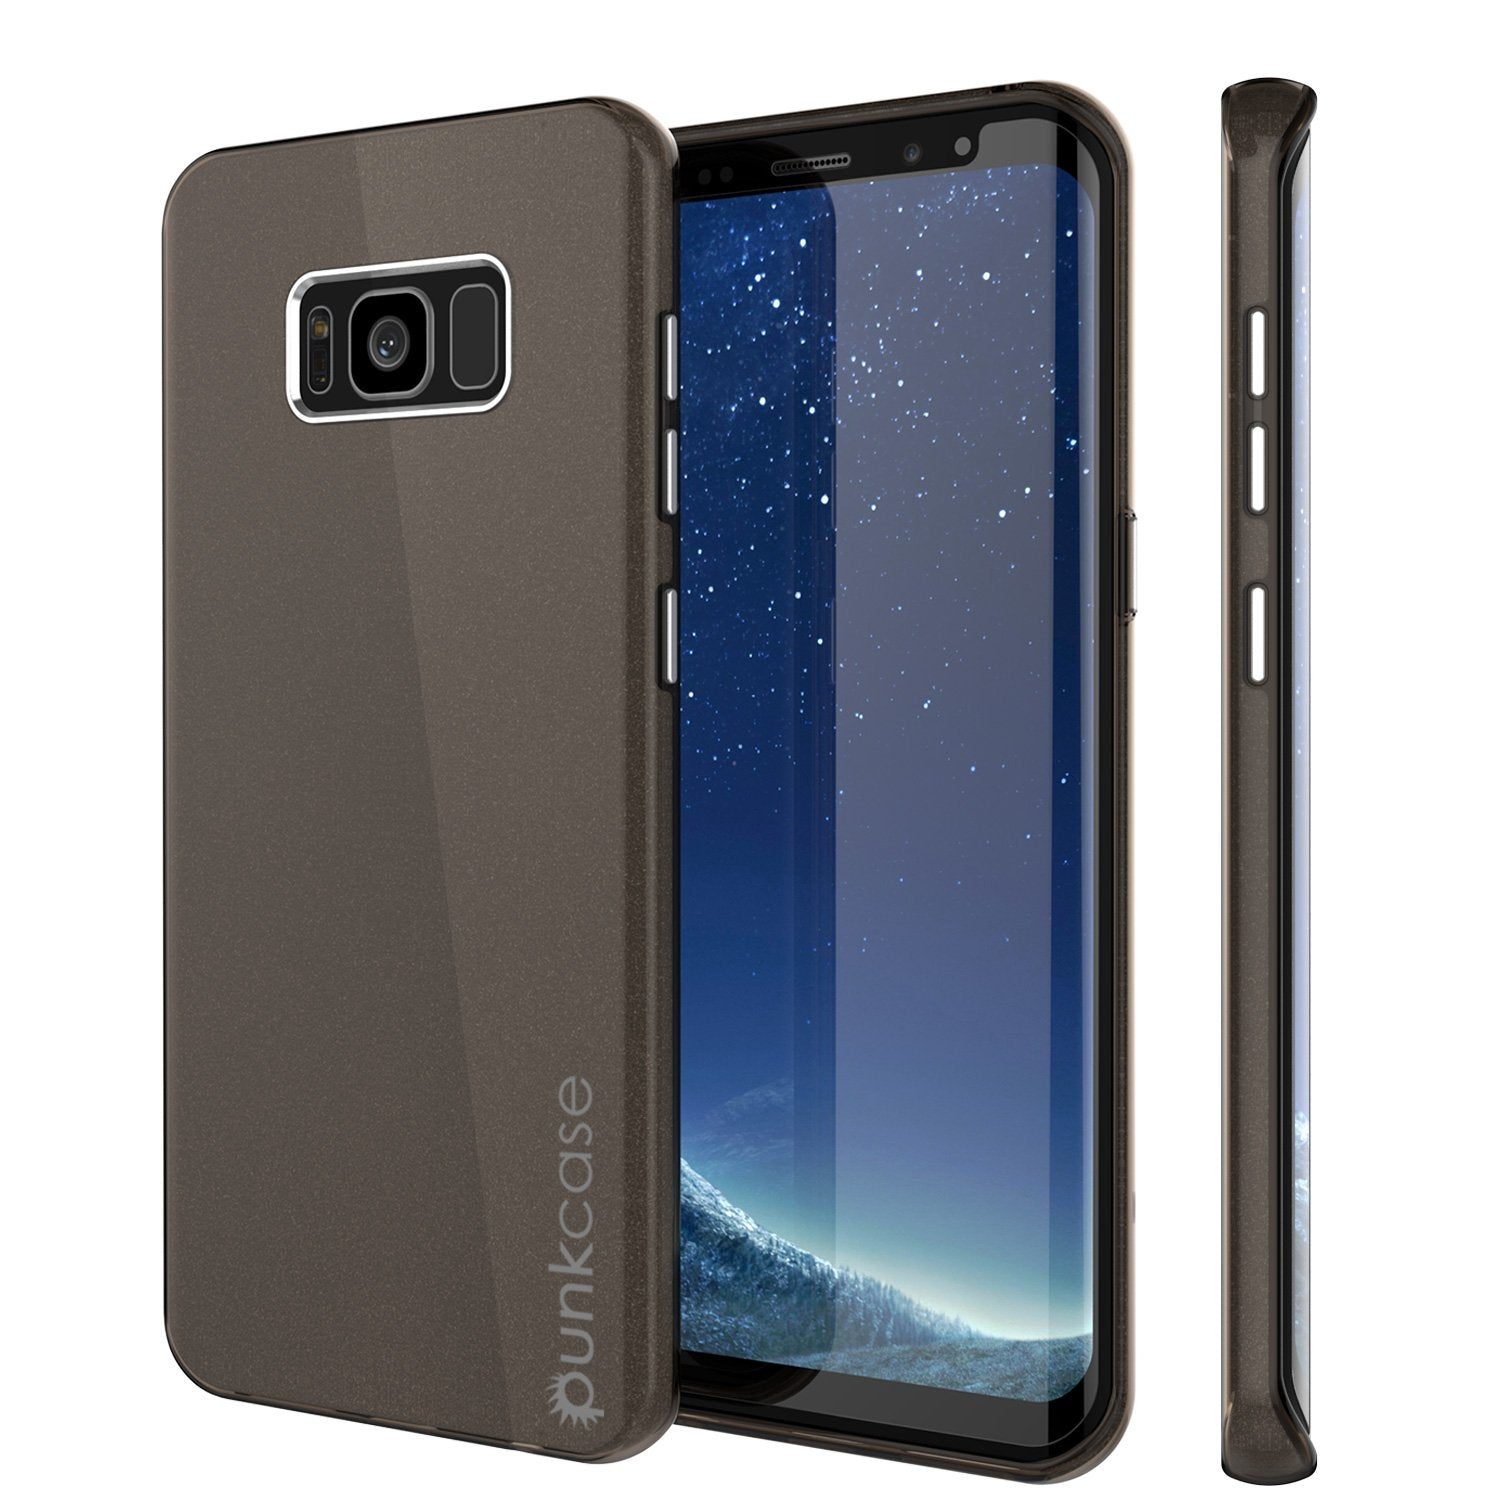 Galaxy S8 Case, Punkcase Galactic 2.0 Series Ultra Slim Protective Armor TPU Cover w/ PunkShield Screen Protector | Lifetime Exchange Warranty | Designed for Samsung Galaxy S8 [Black/grey]